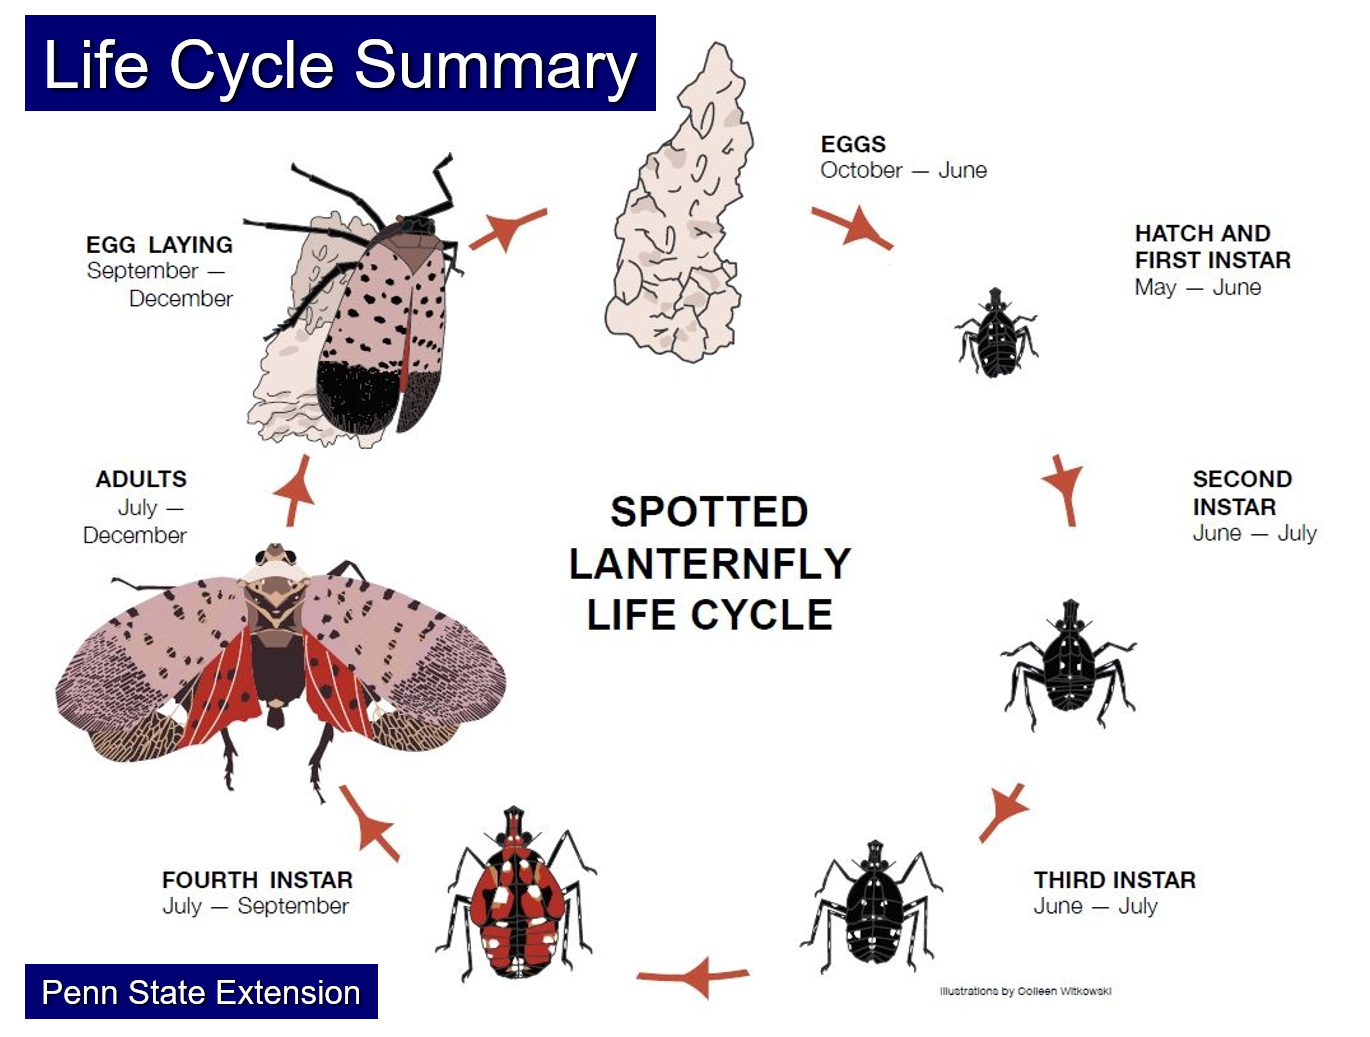 Figure 5. Life cycle of Spotted Lanternfly from Penn State Extension Source: Penn State Extension